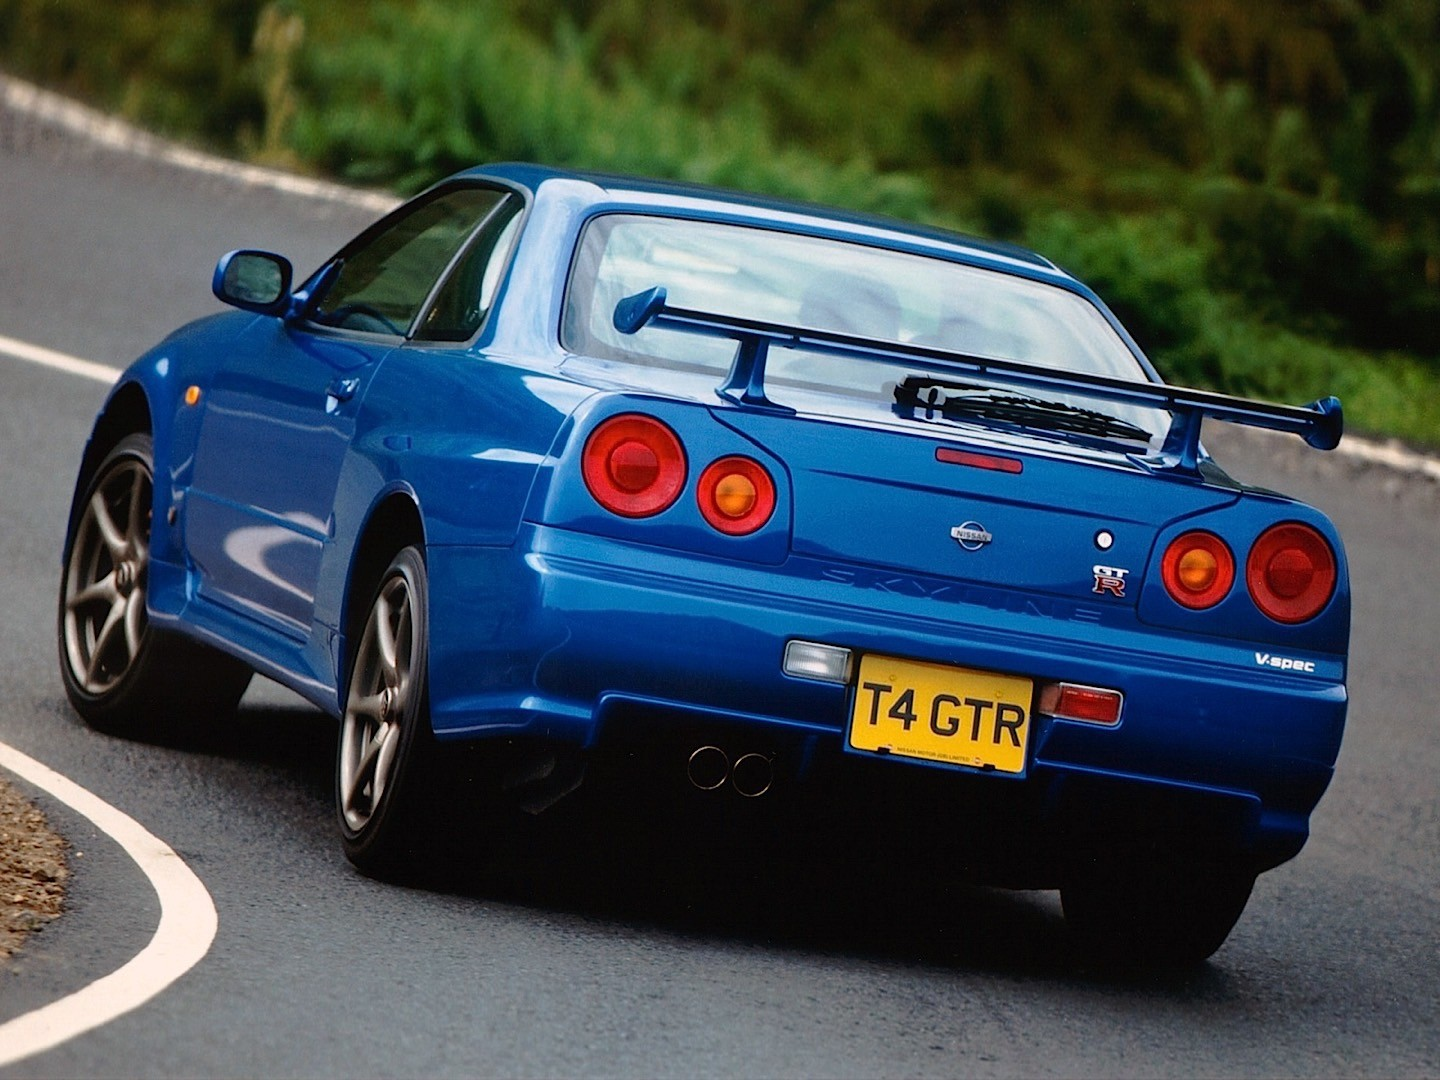 1999 Skyline Gtr Top Car Release 2020